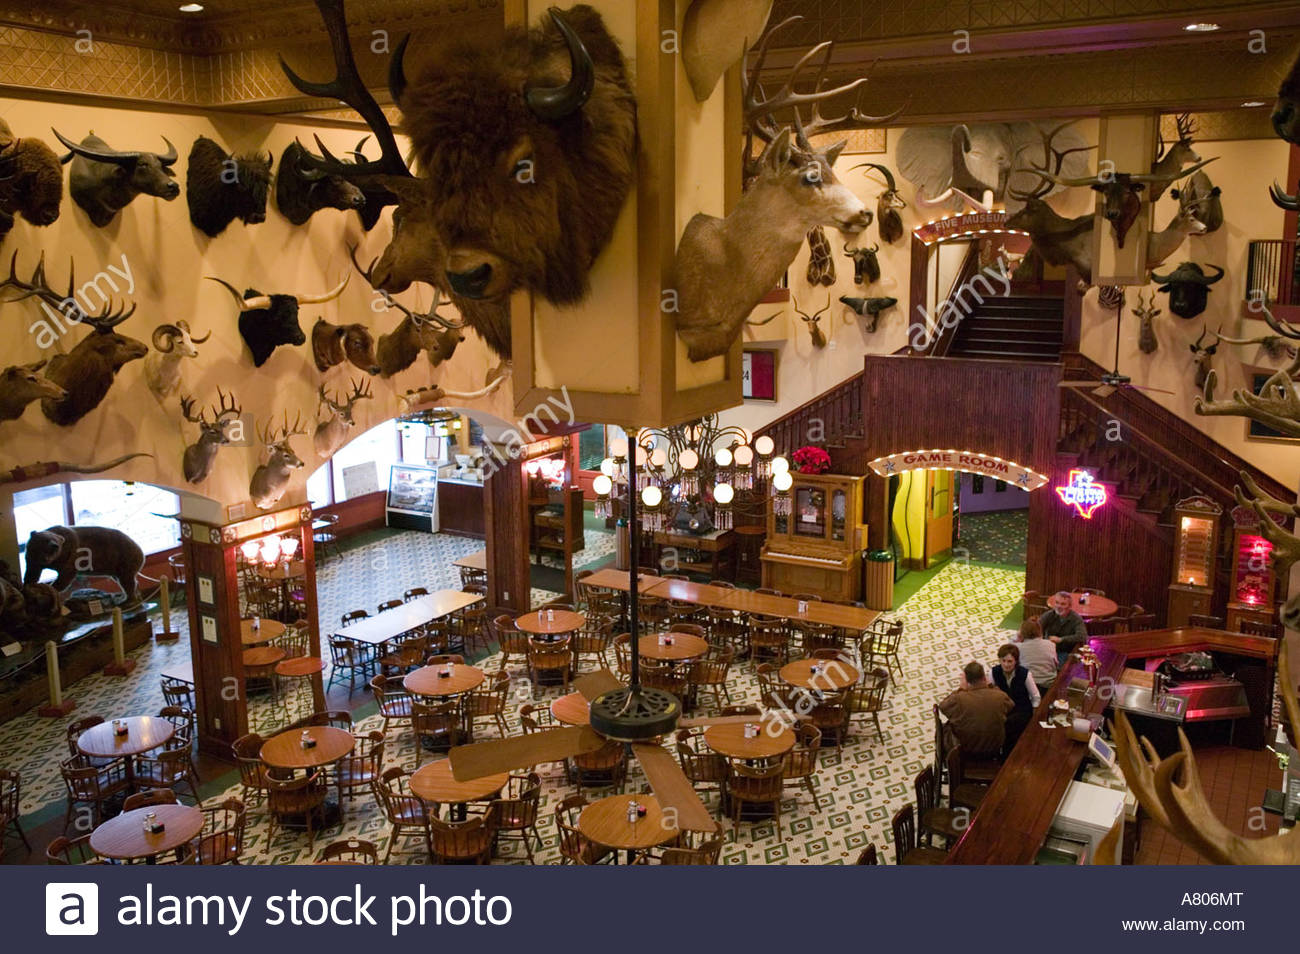 Coronado Ferry San Diego, USA, TEXAS, San Antonio: The Buckhorn Saloon & Museum Interior ...